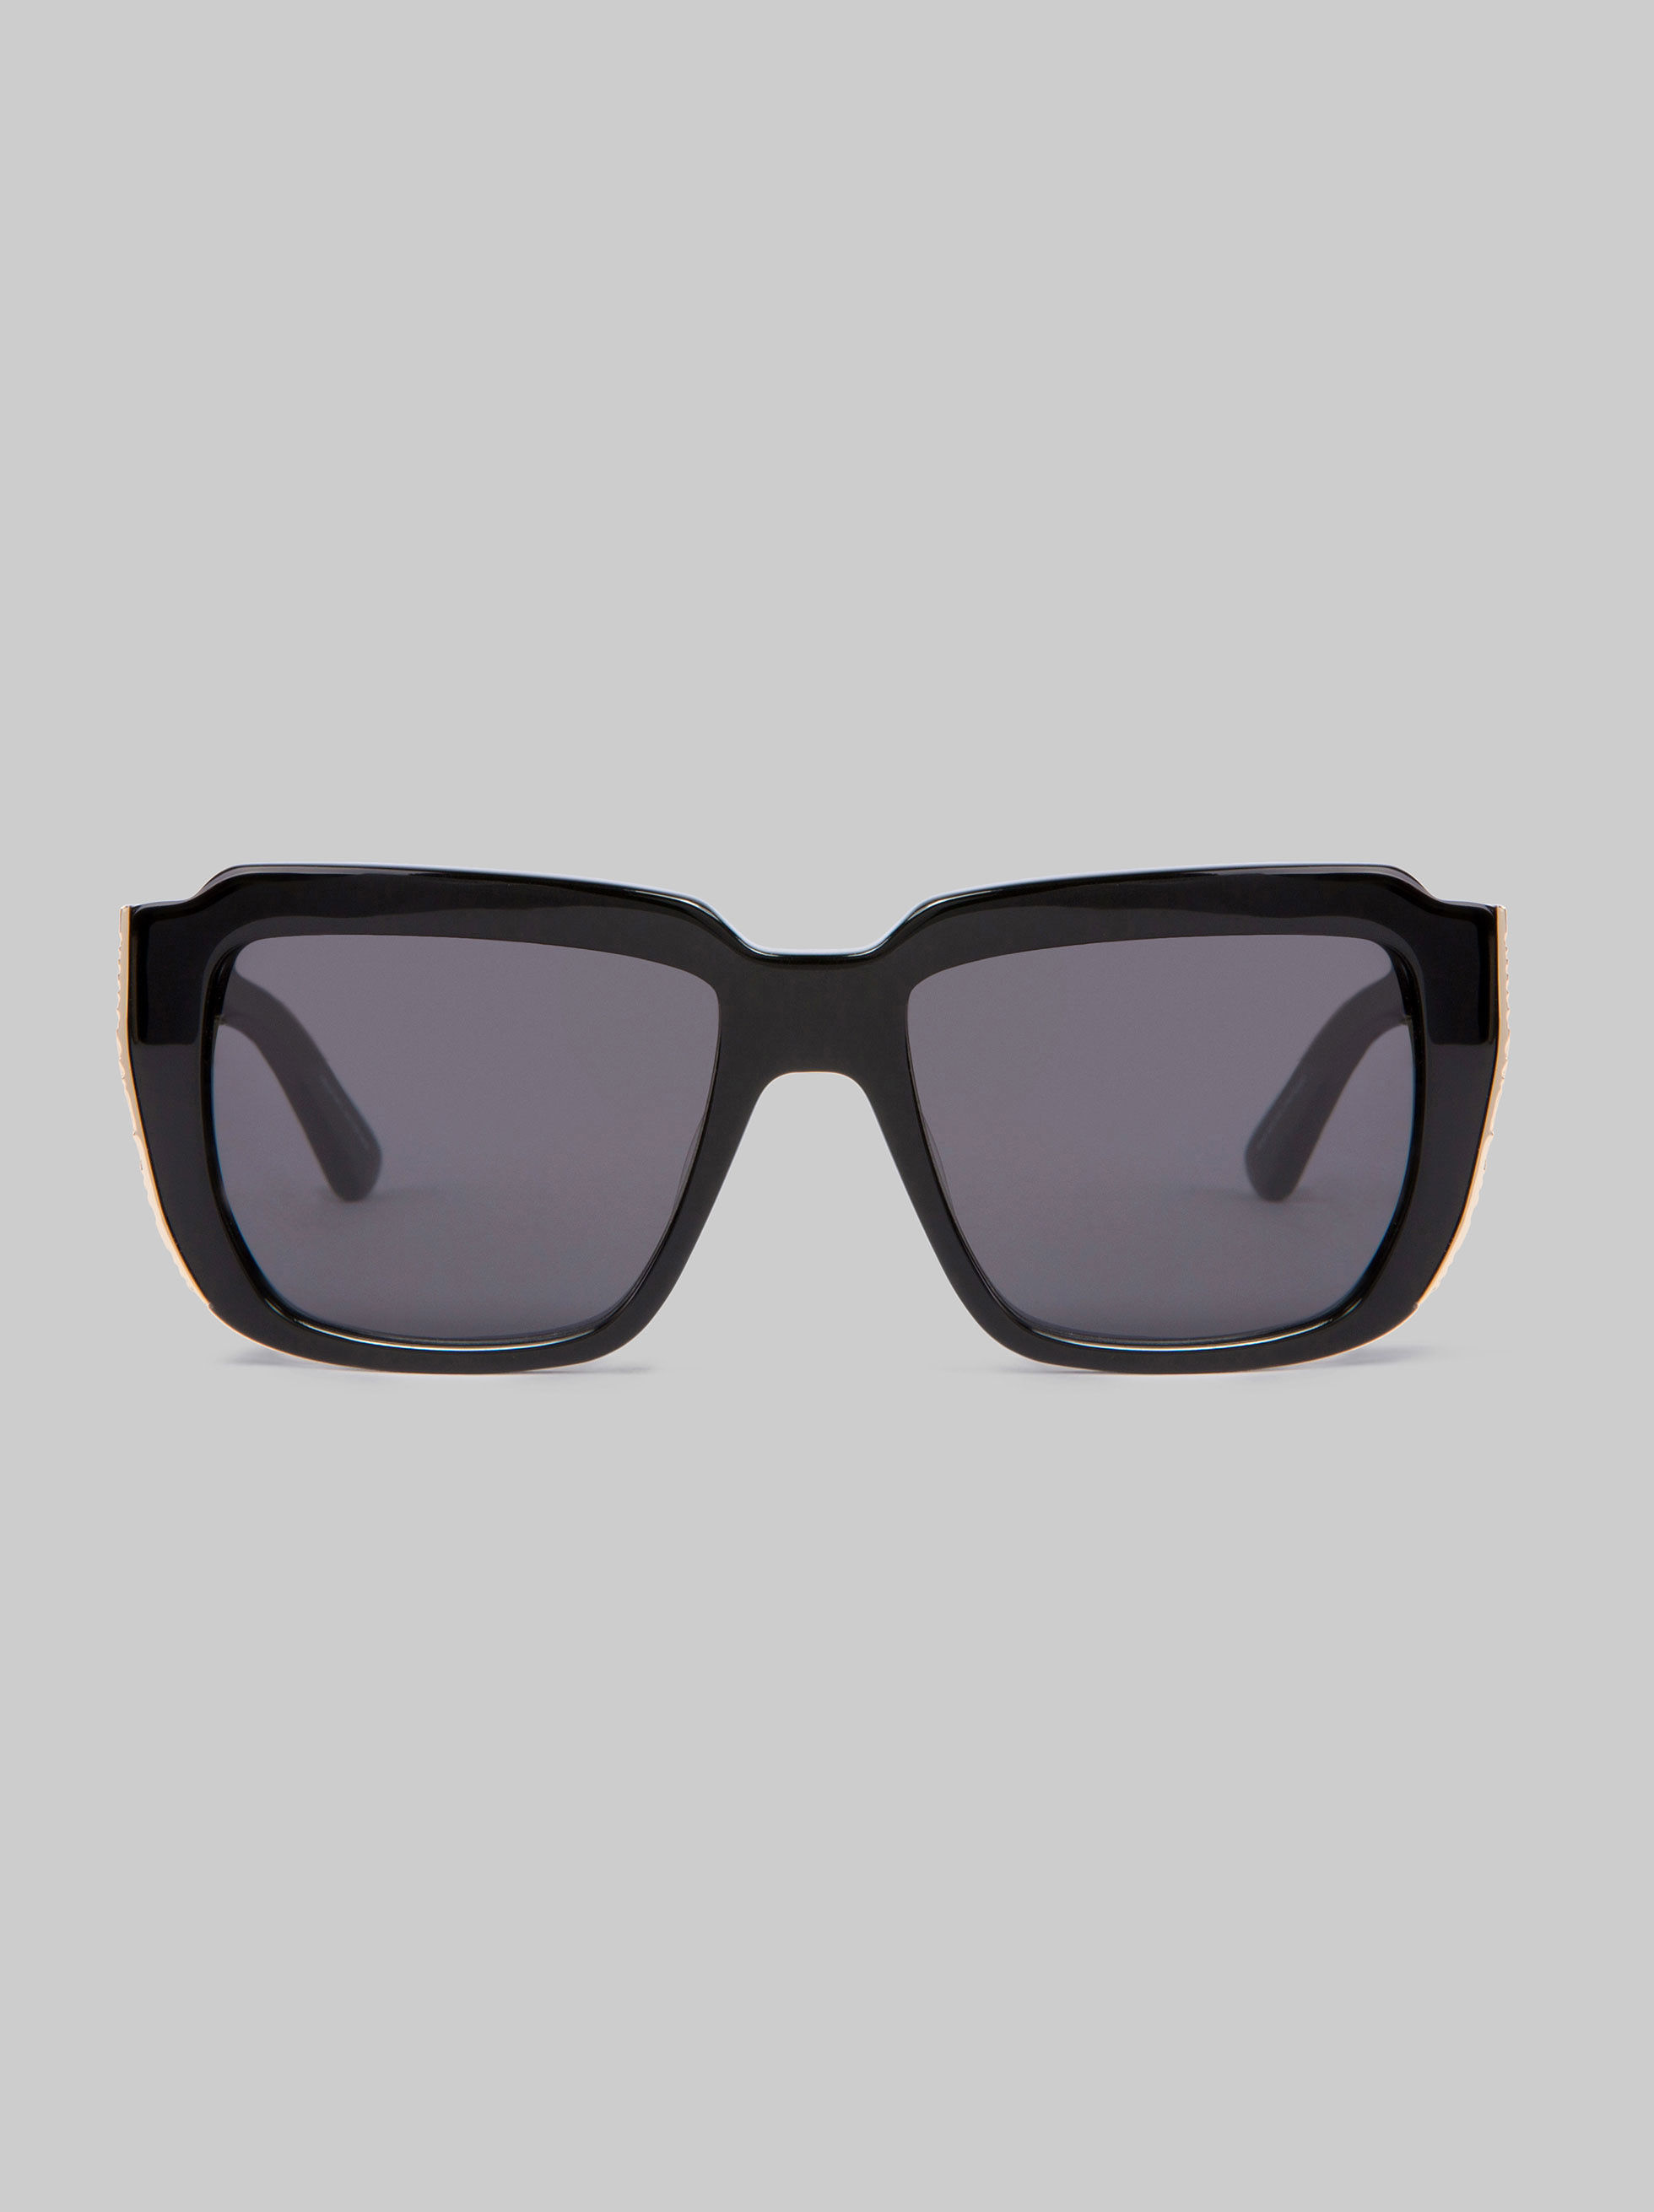 RECTANGULAR-FRAME SUNGLASSES